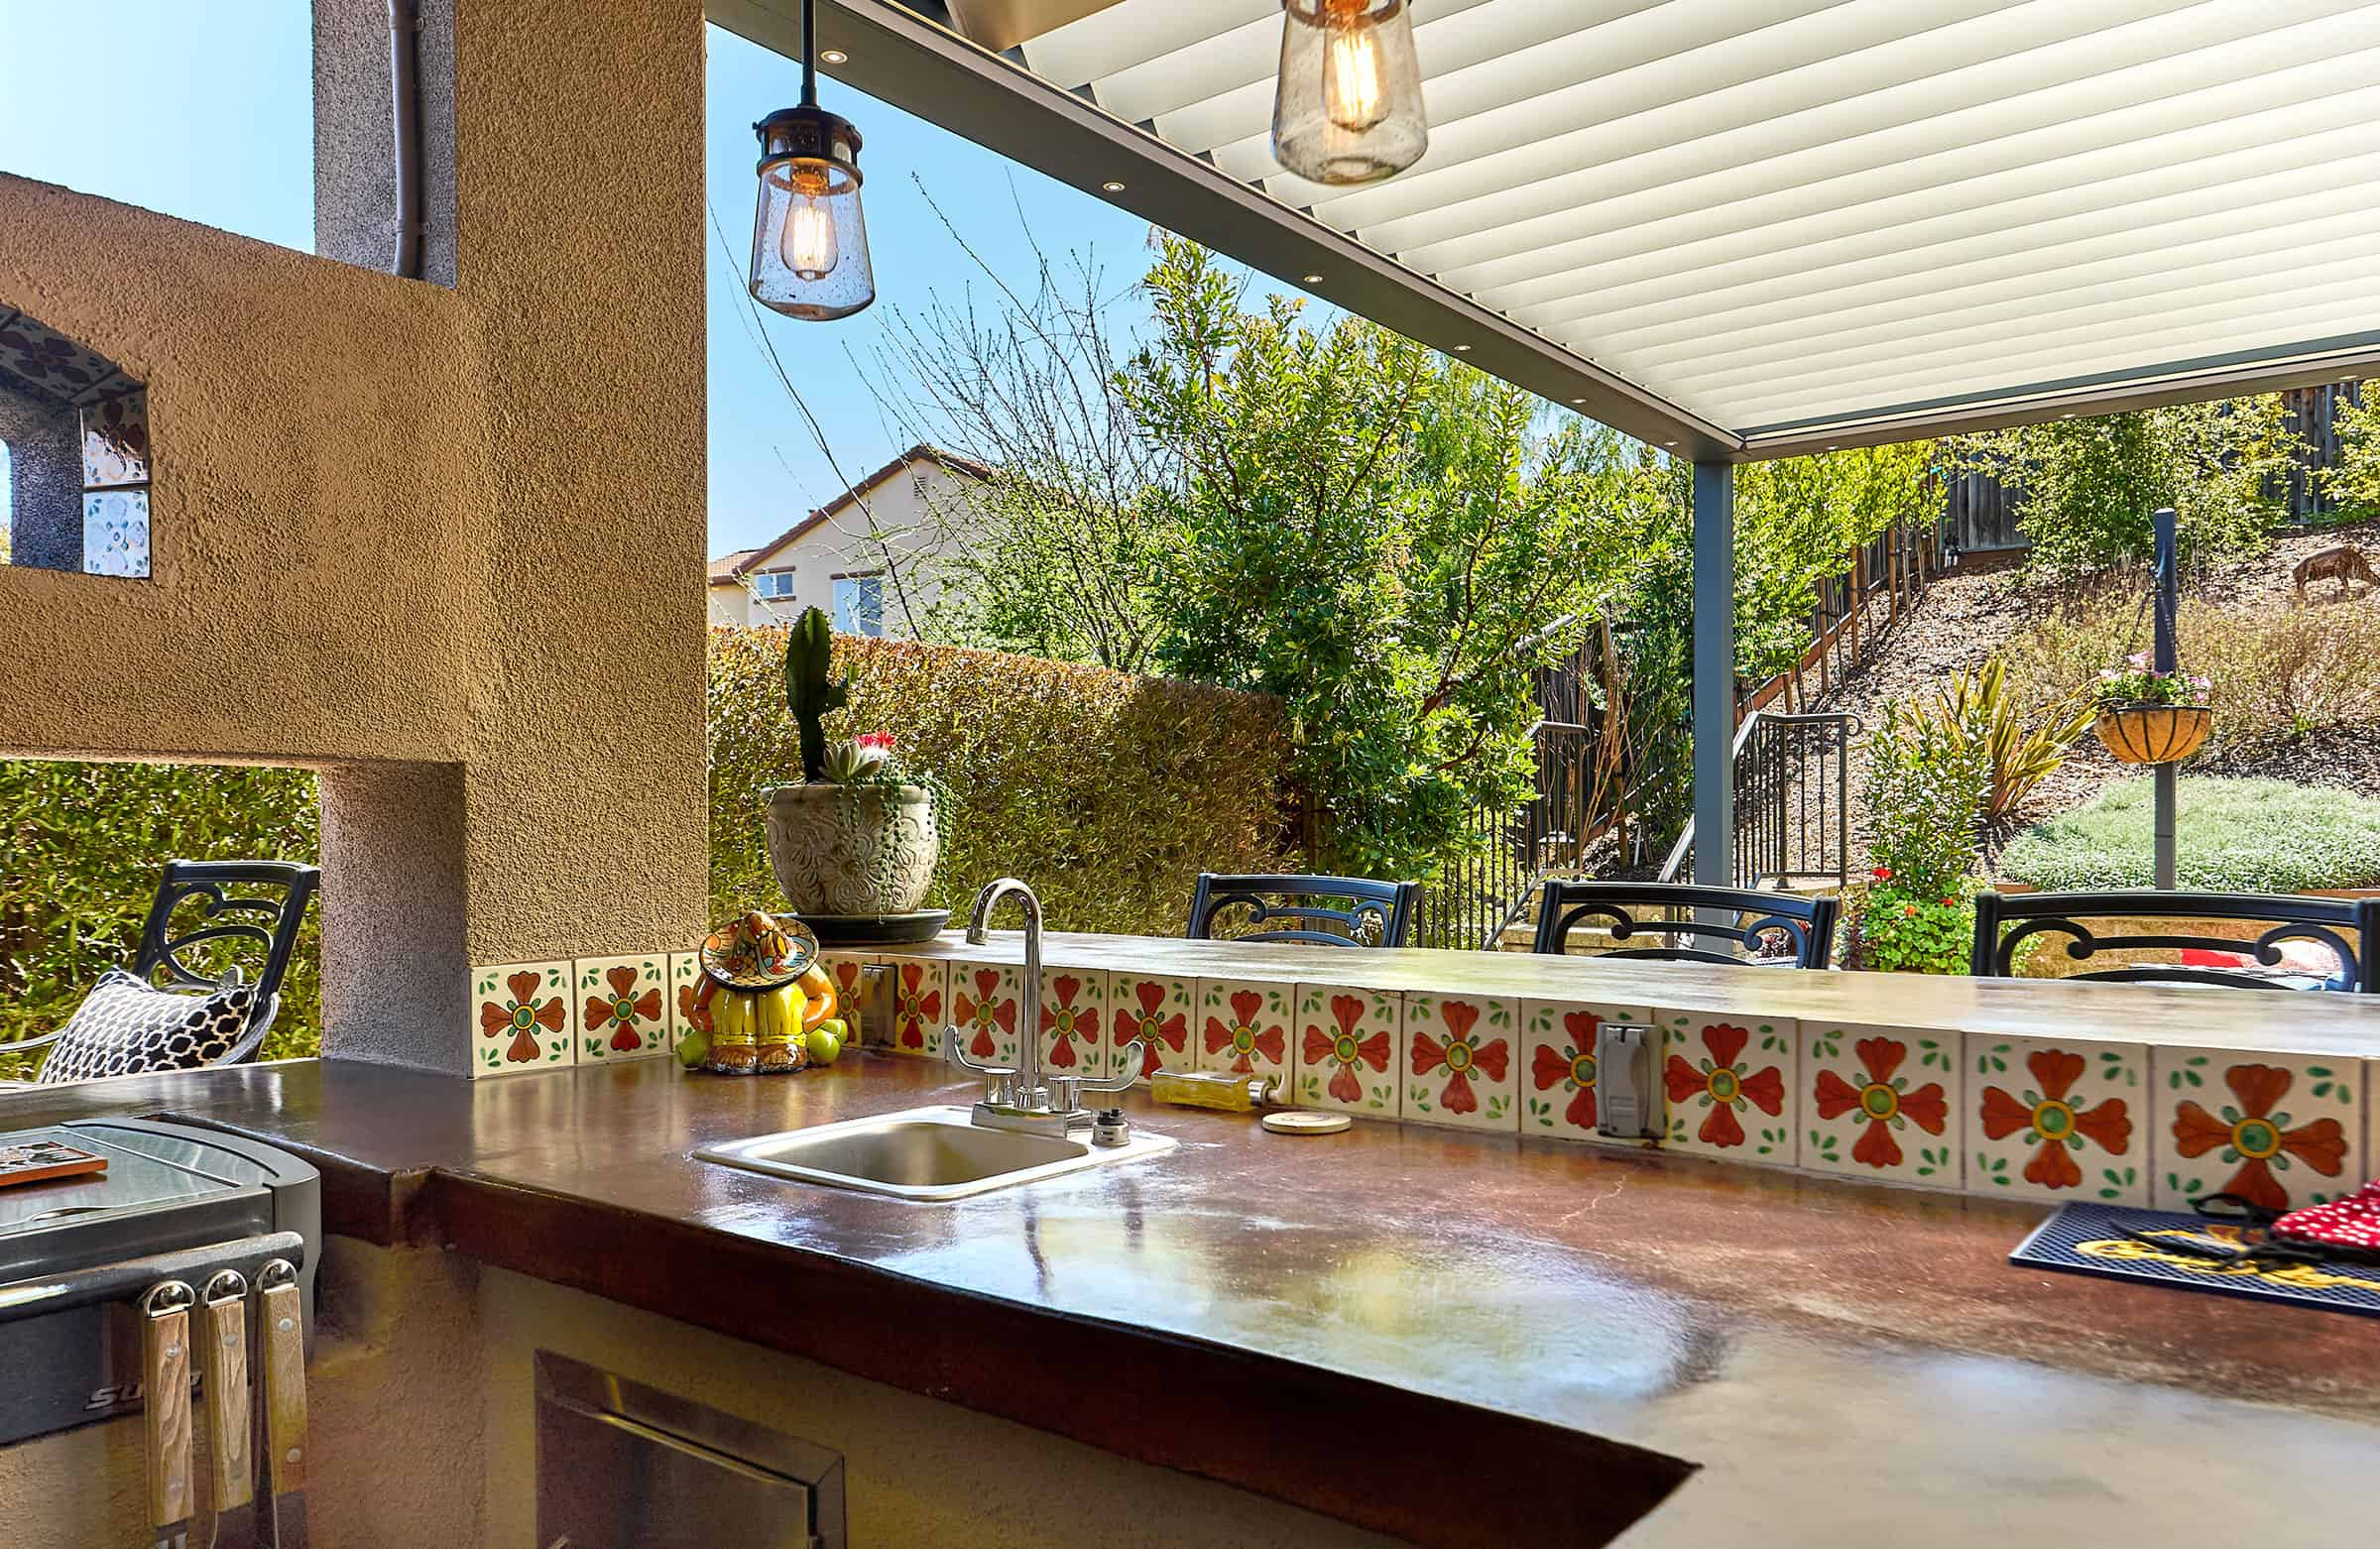 Pergolas by Julie - Outdoor Kitchen and BBQ Under Pergola Louvered Shade